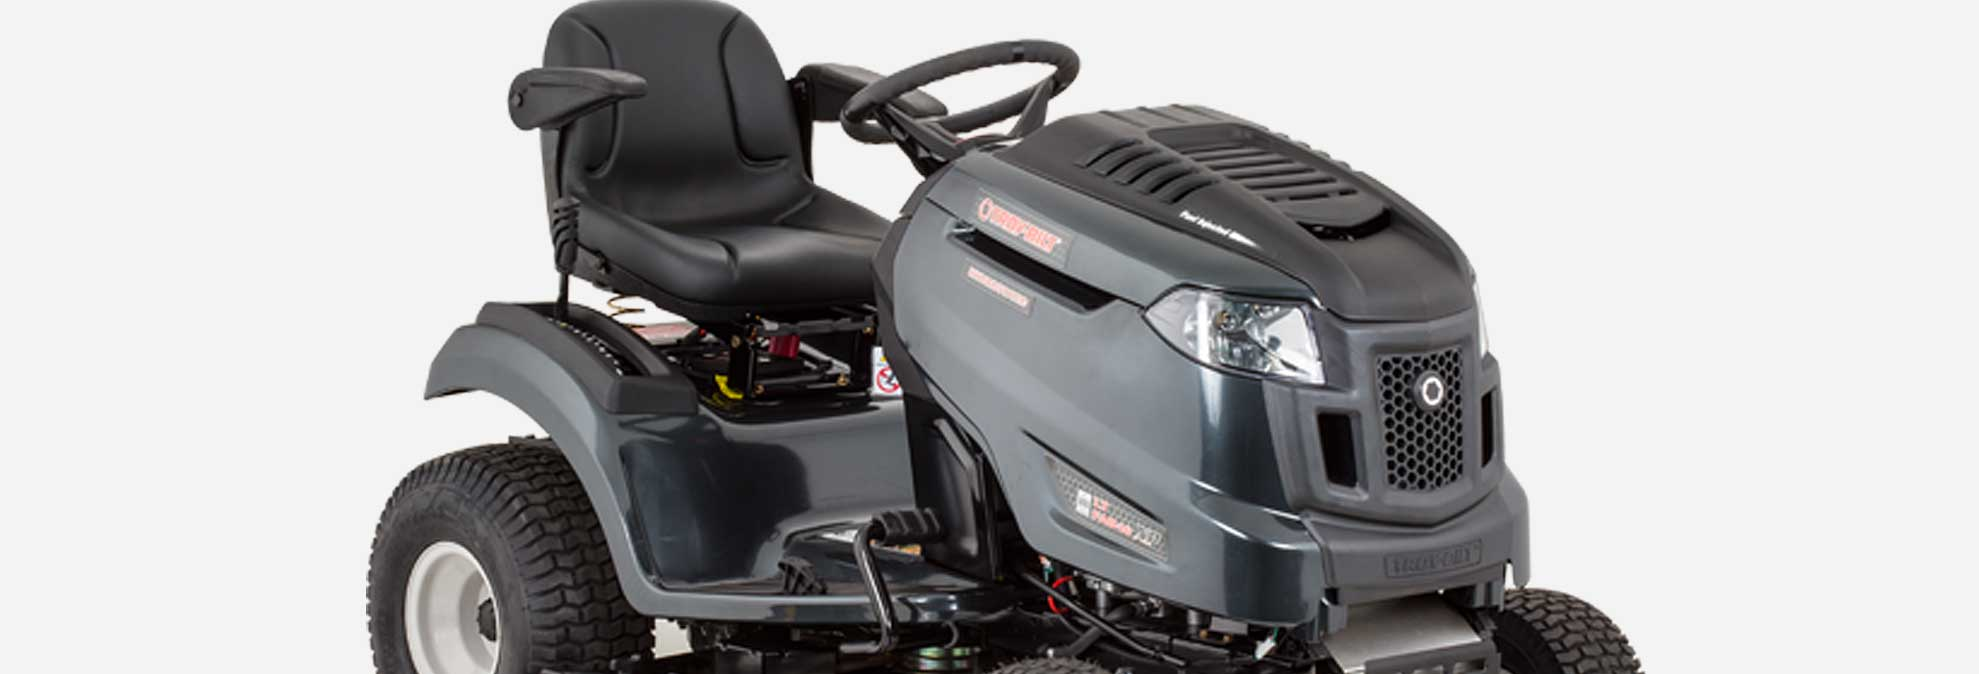 Troy Bilt Xp Residential Mower With Fuel Injection Consumer Reports